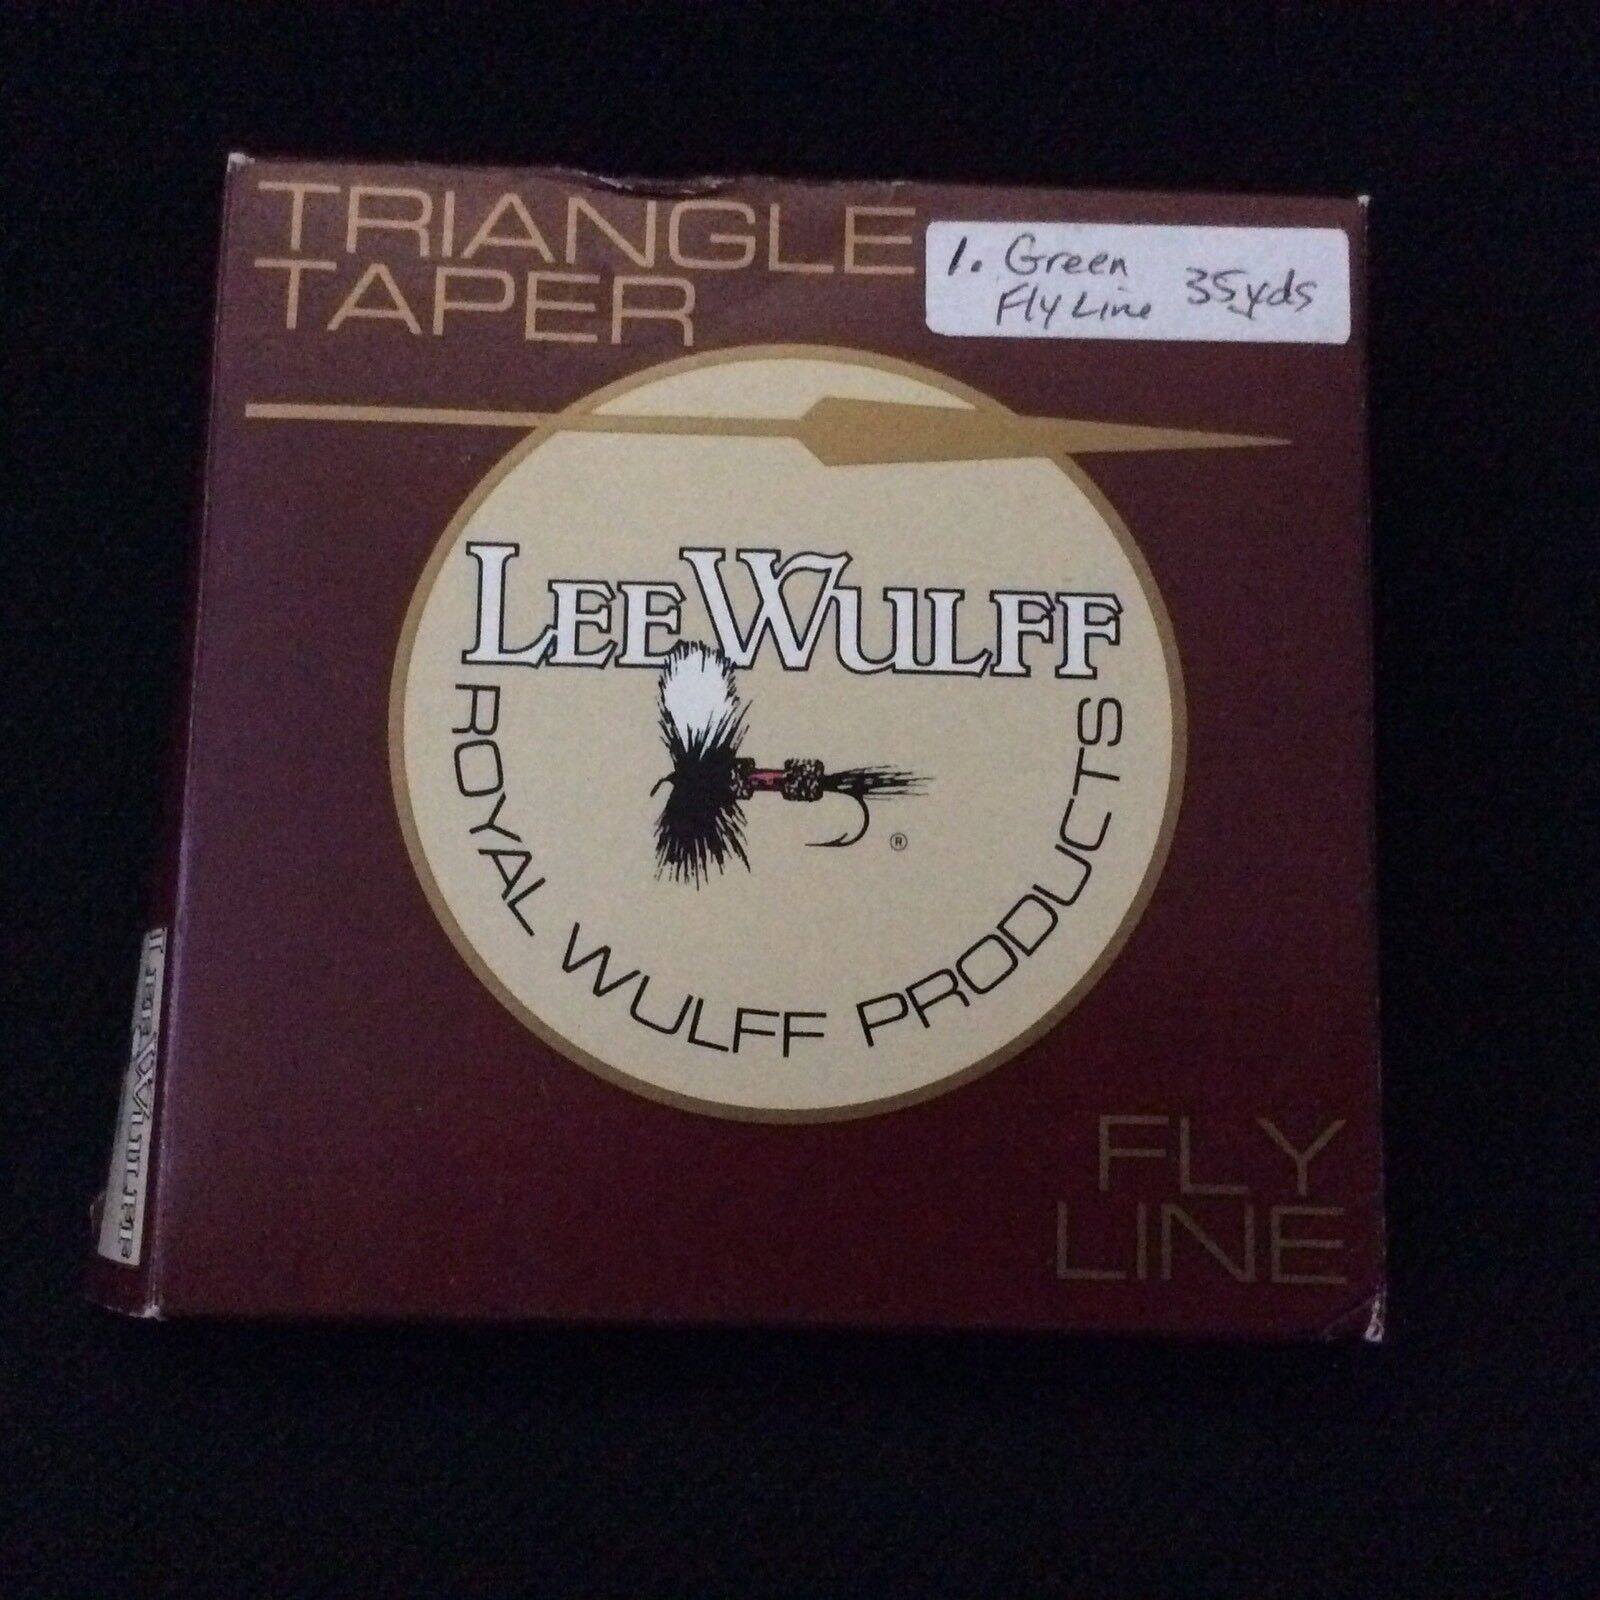 Royal Wolff Green Triangle Taper Floating Line 35 Yards NEW HCR 1 Box 70